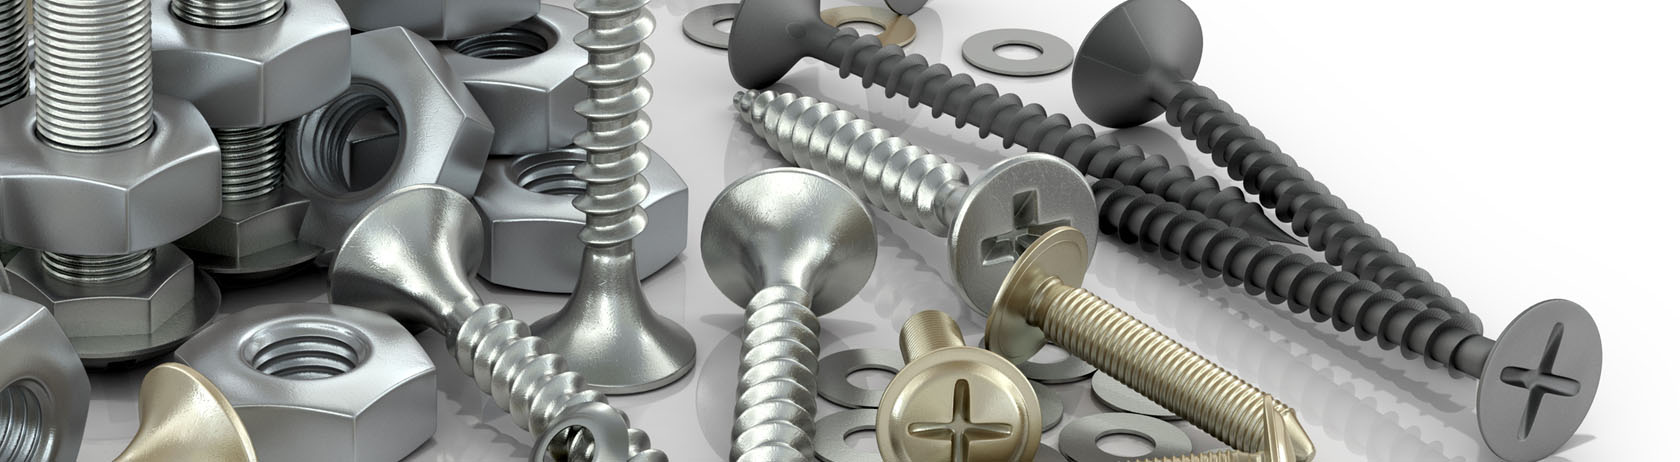 When is a screw not a screw? When it's a coated fastener